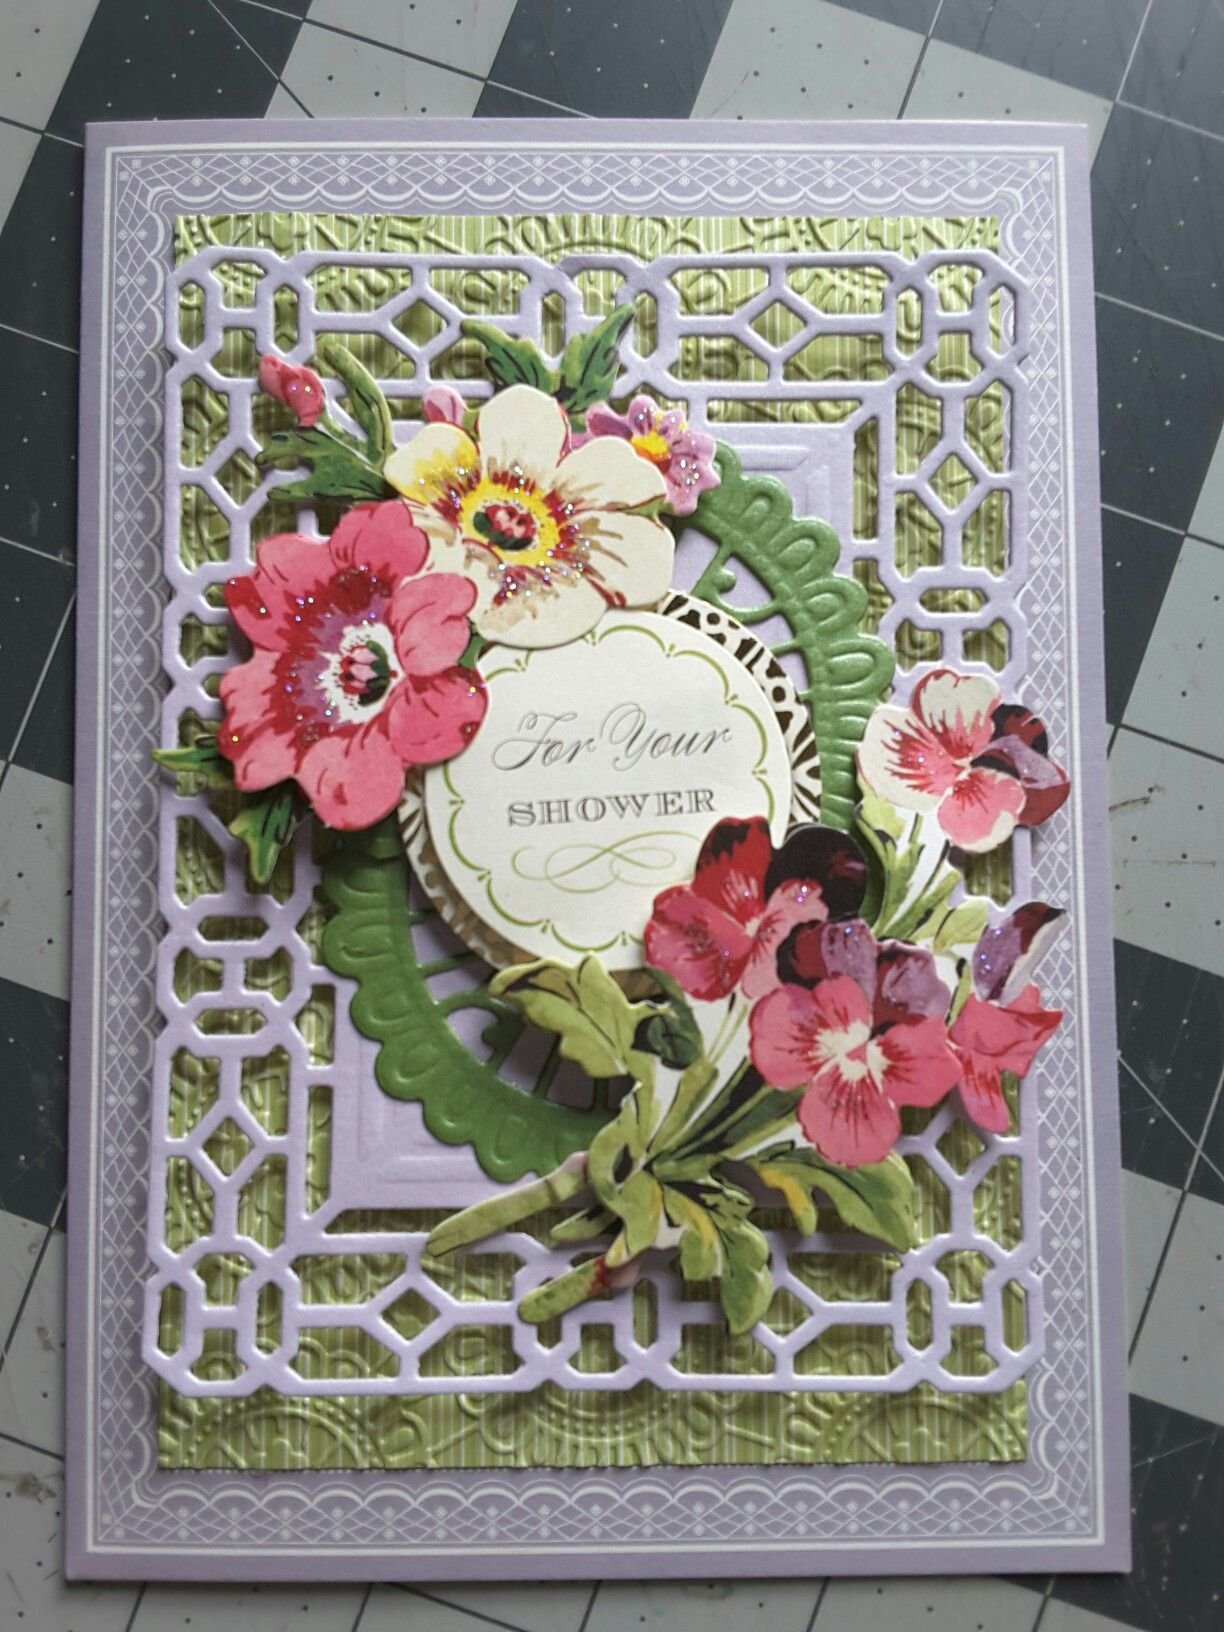 Bridal shower card made with anna griffin products by christa trude